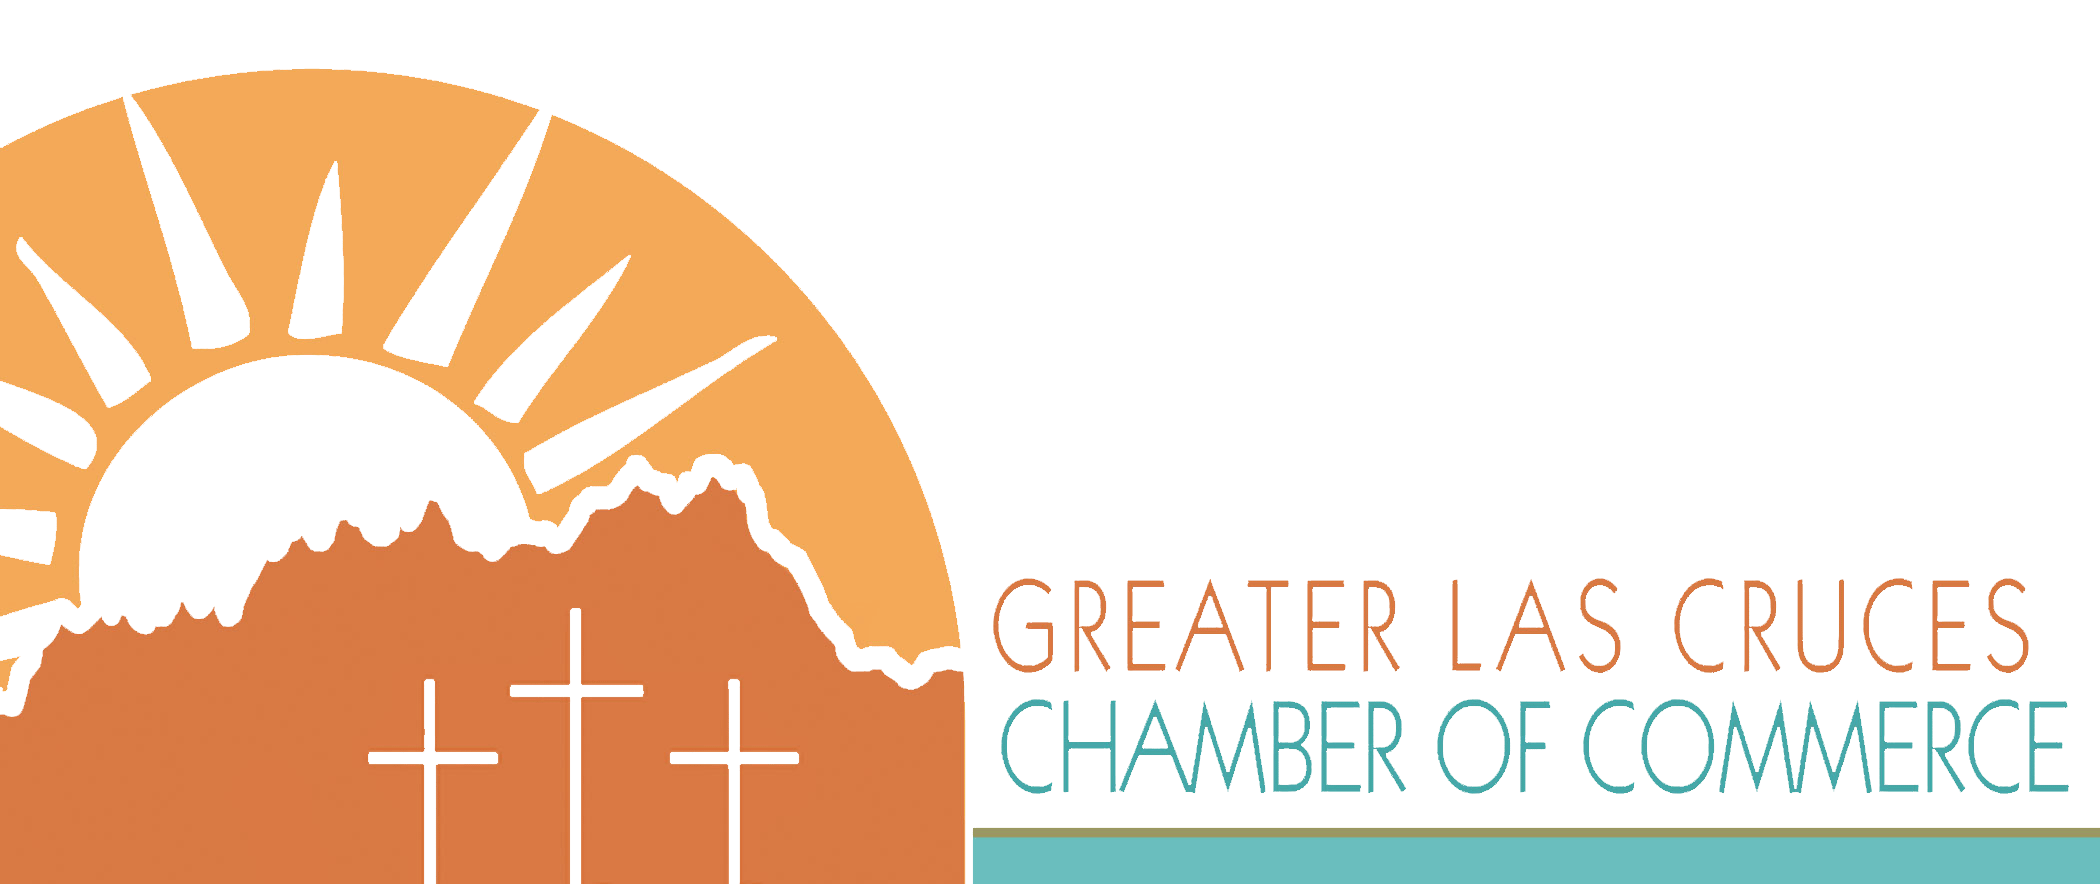 Greater Las Cruces Chamber of Commerce